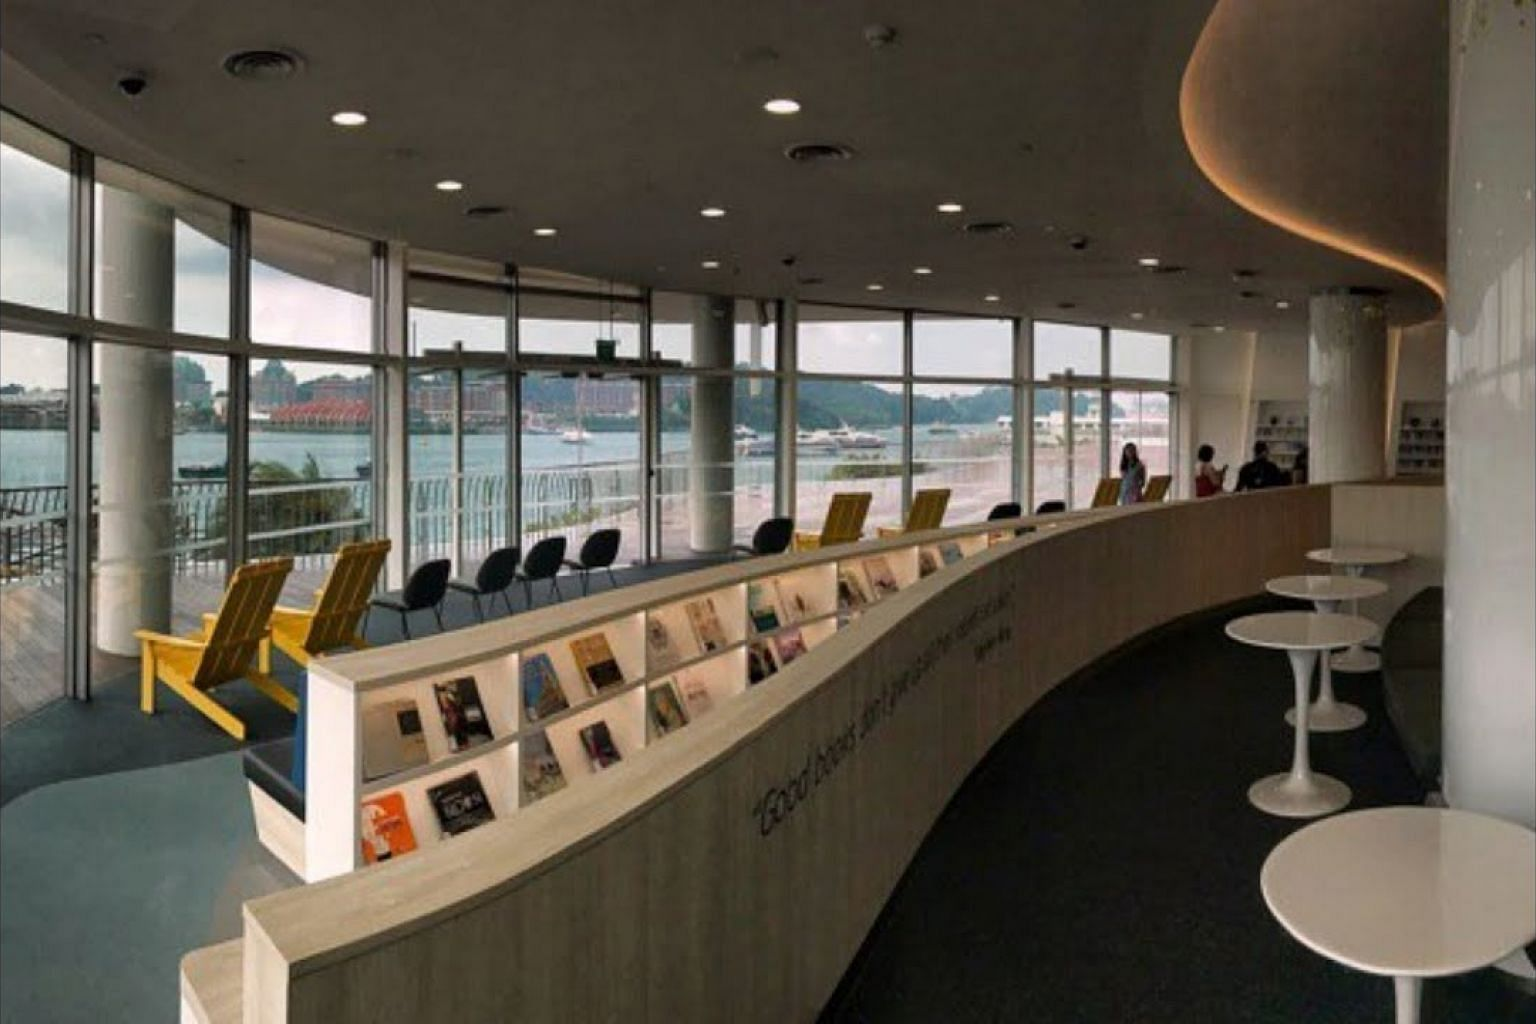 A walkthrough of the new library at VivoCity